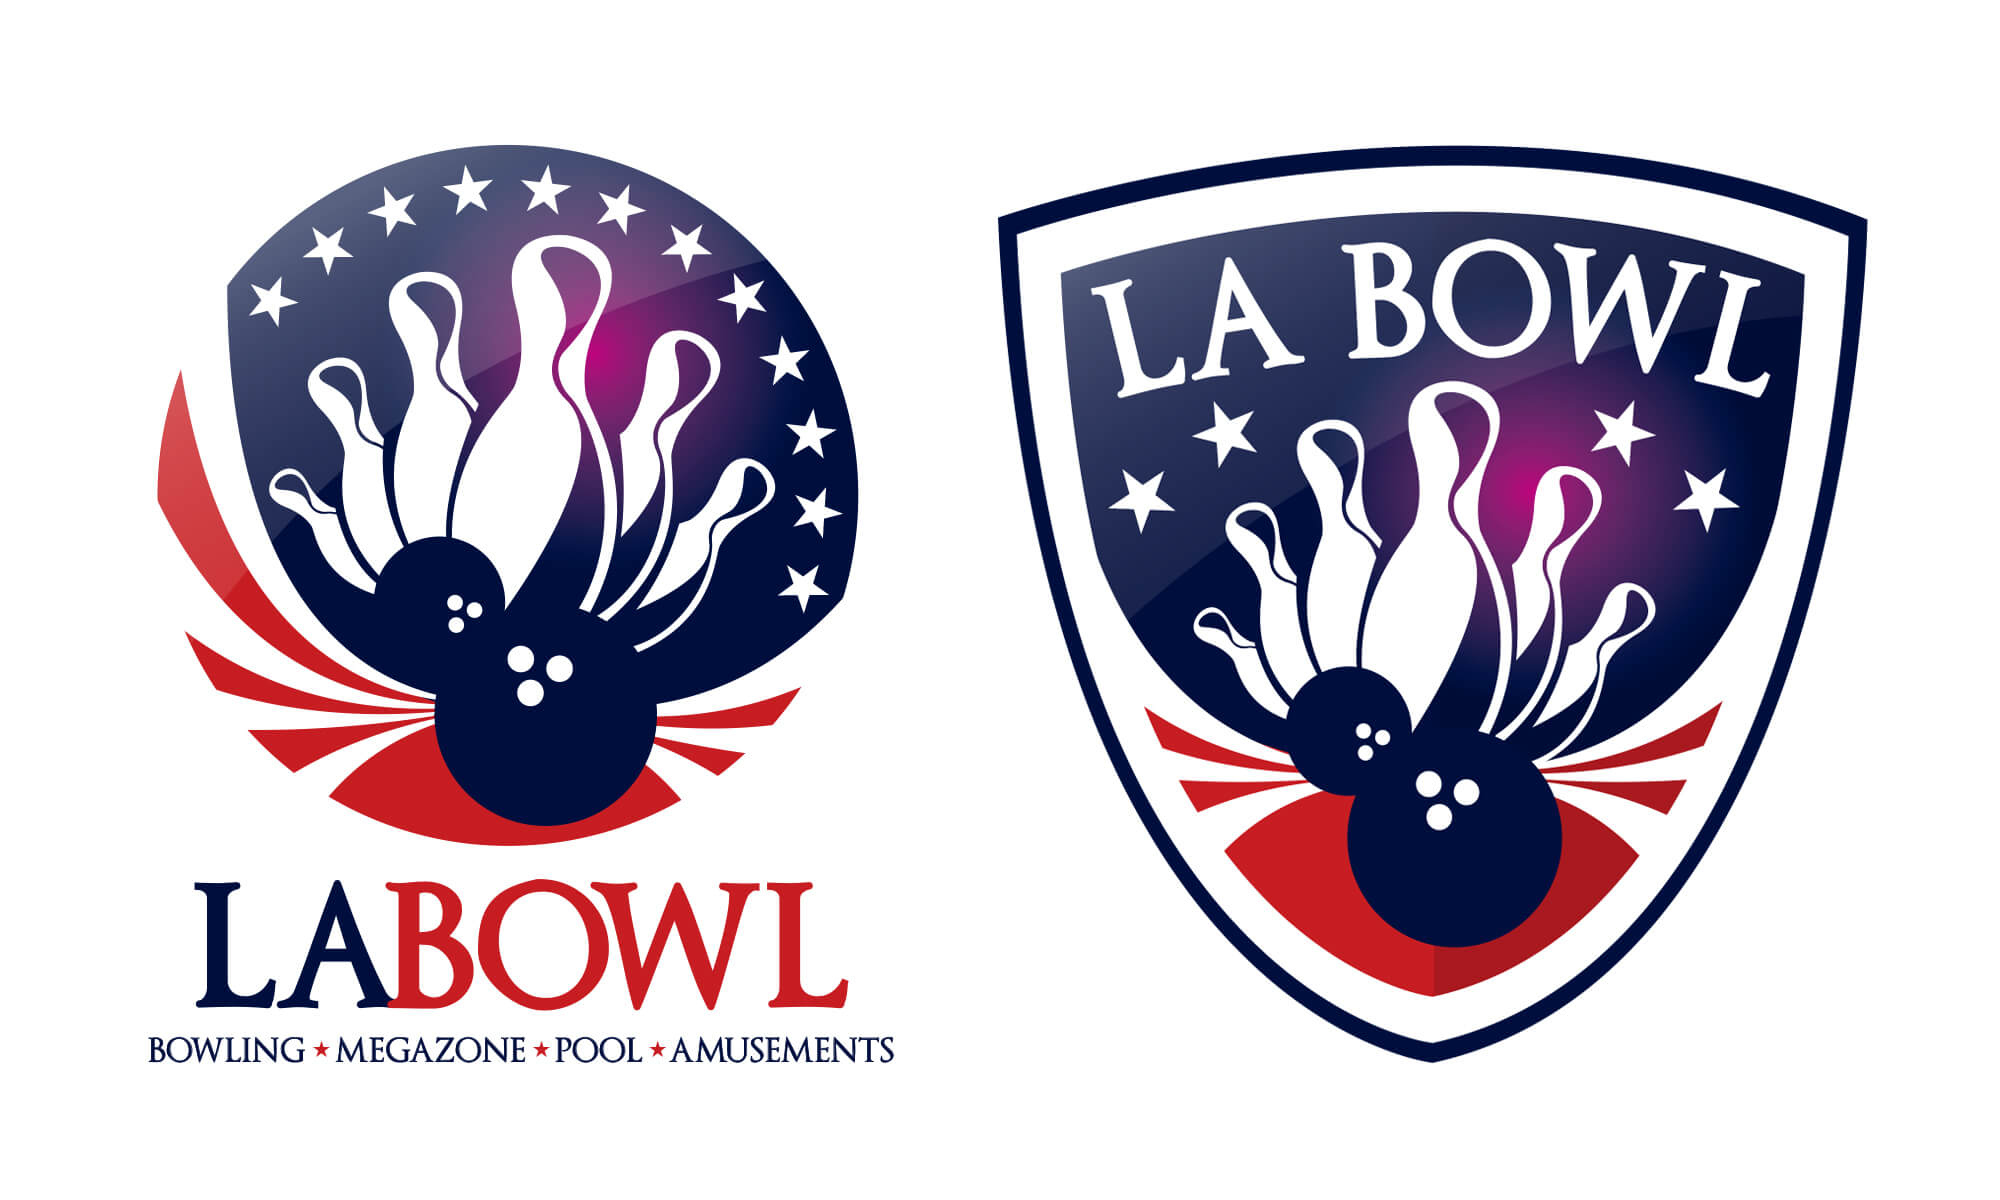 LA Bowl Ayrshire Logo Design Boca